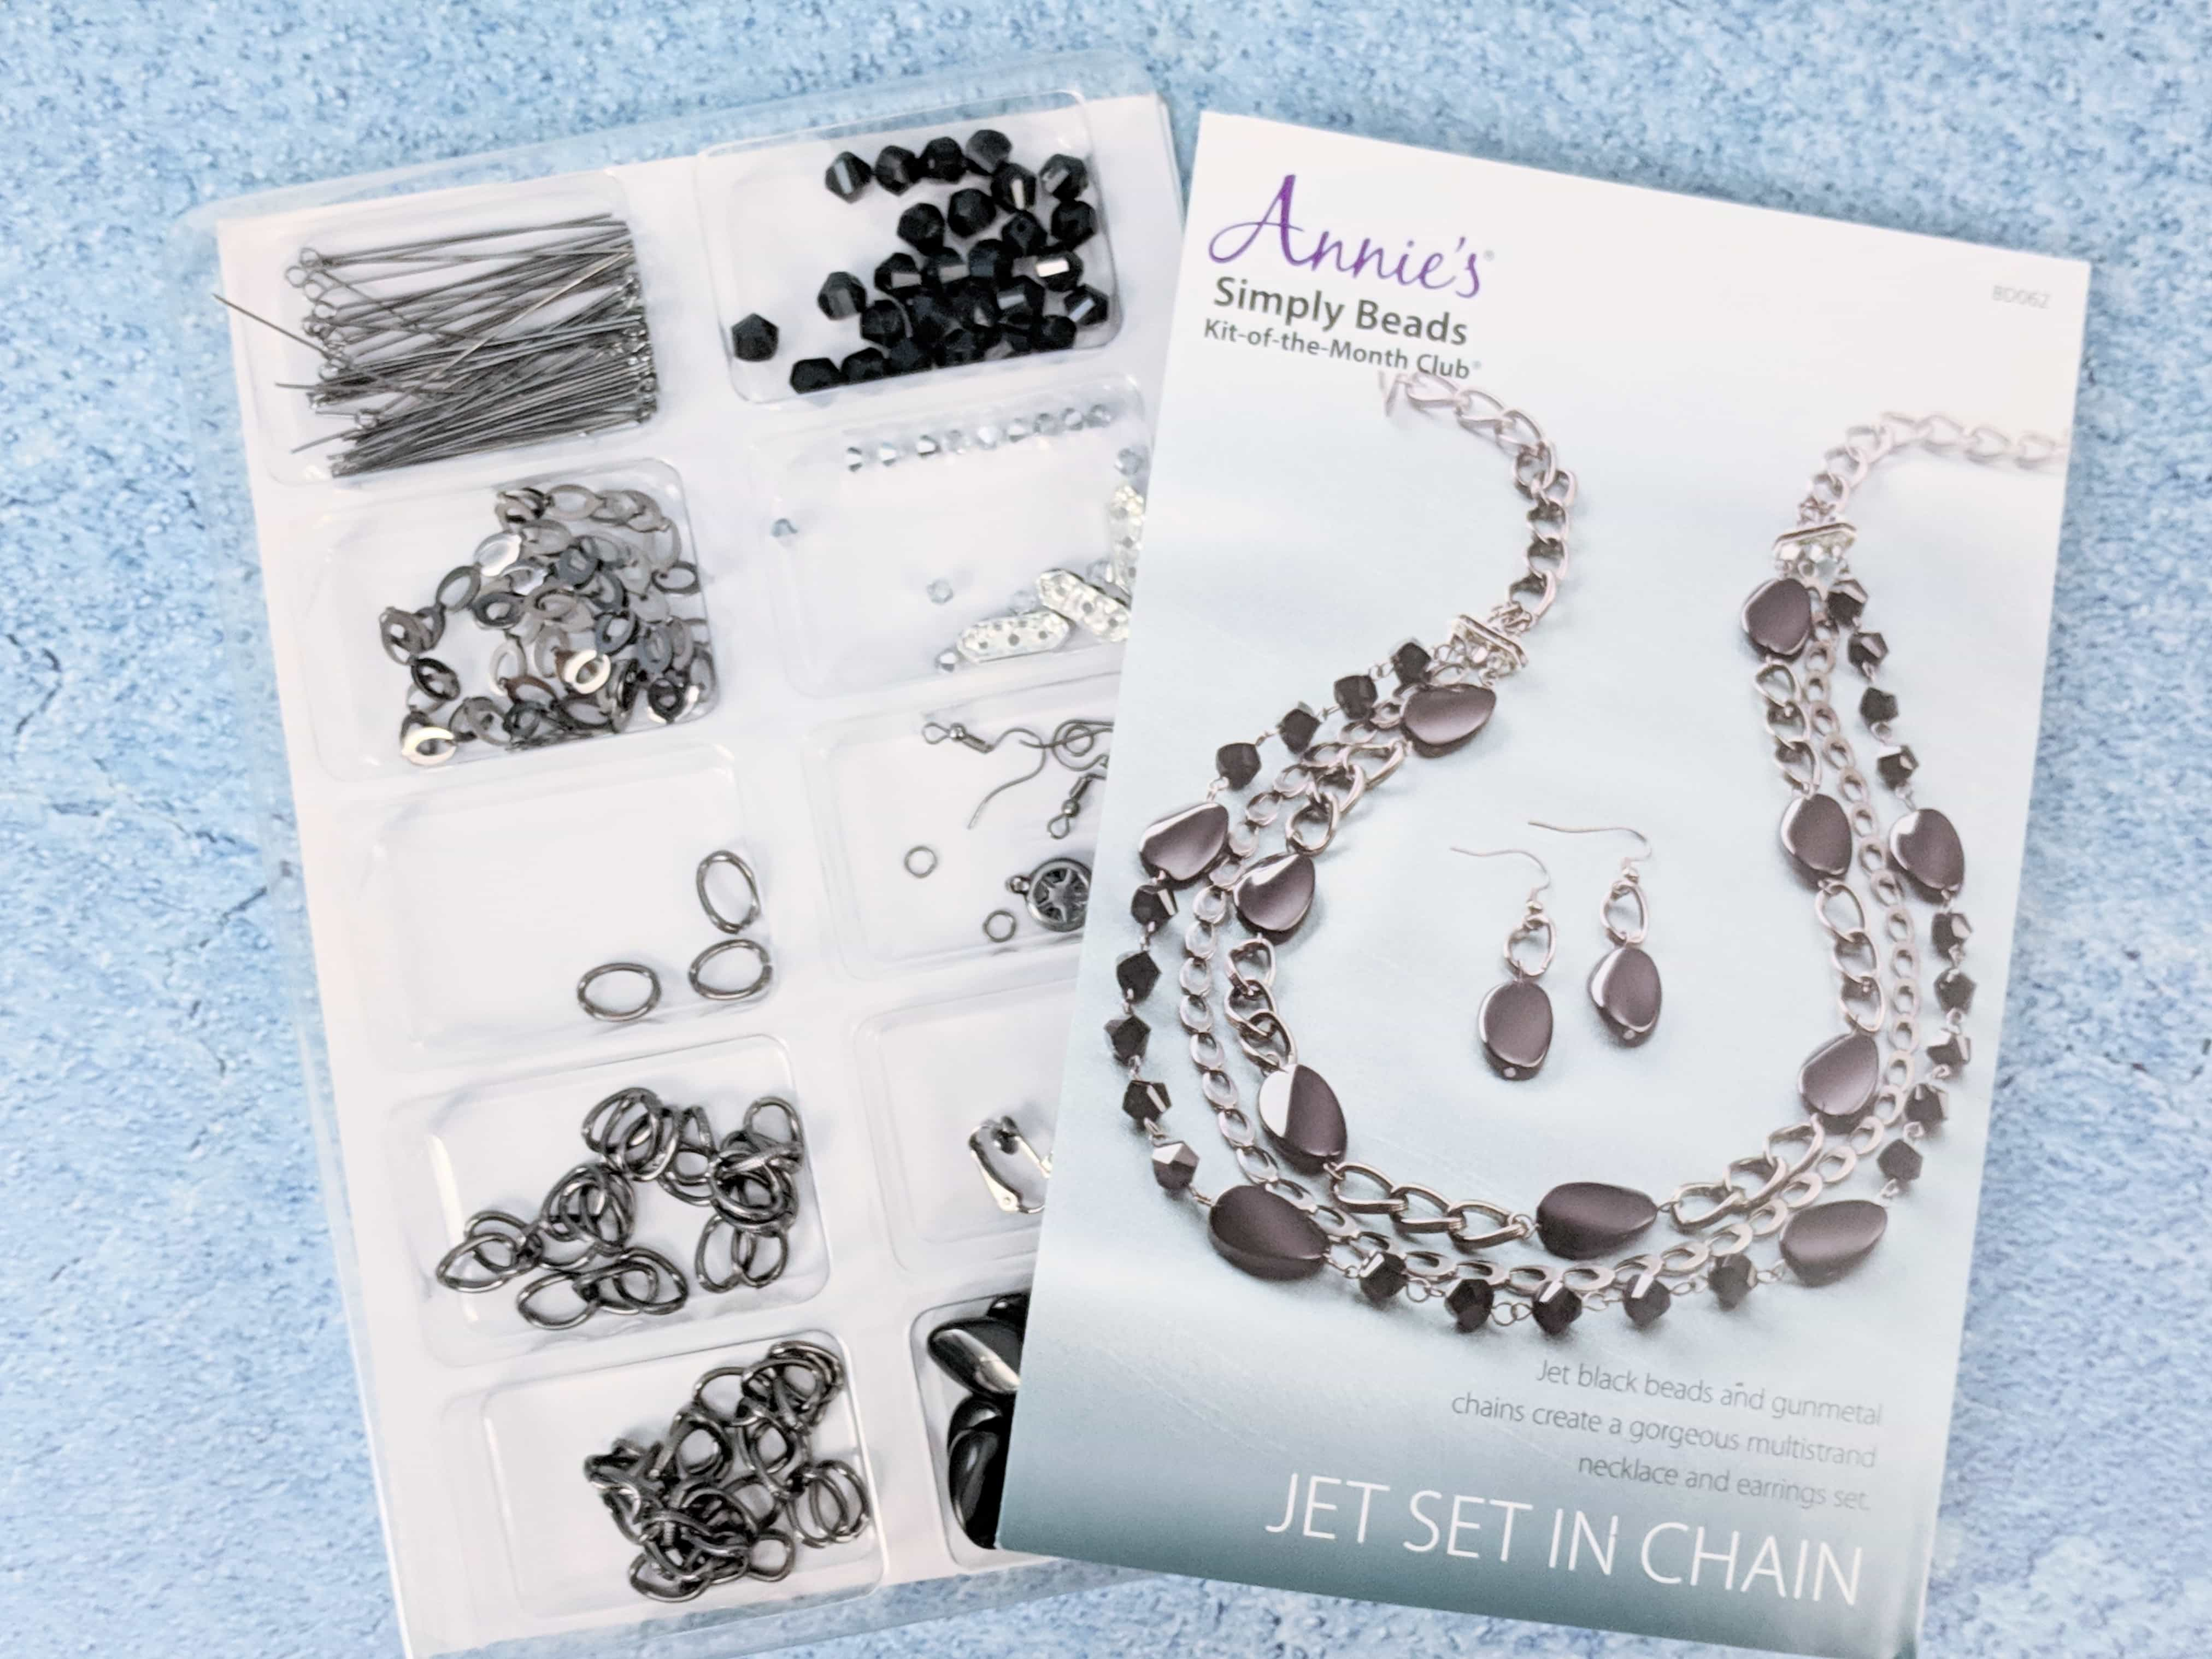 Annie's Simply Beads November 2018 Kit-of-the-Month Club Subscription Box Review